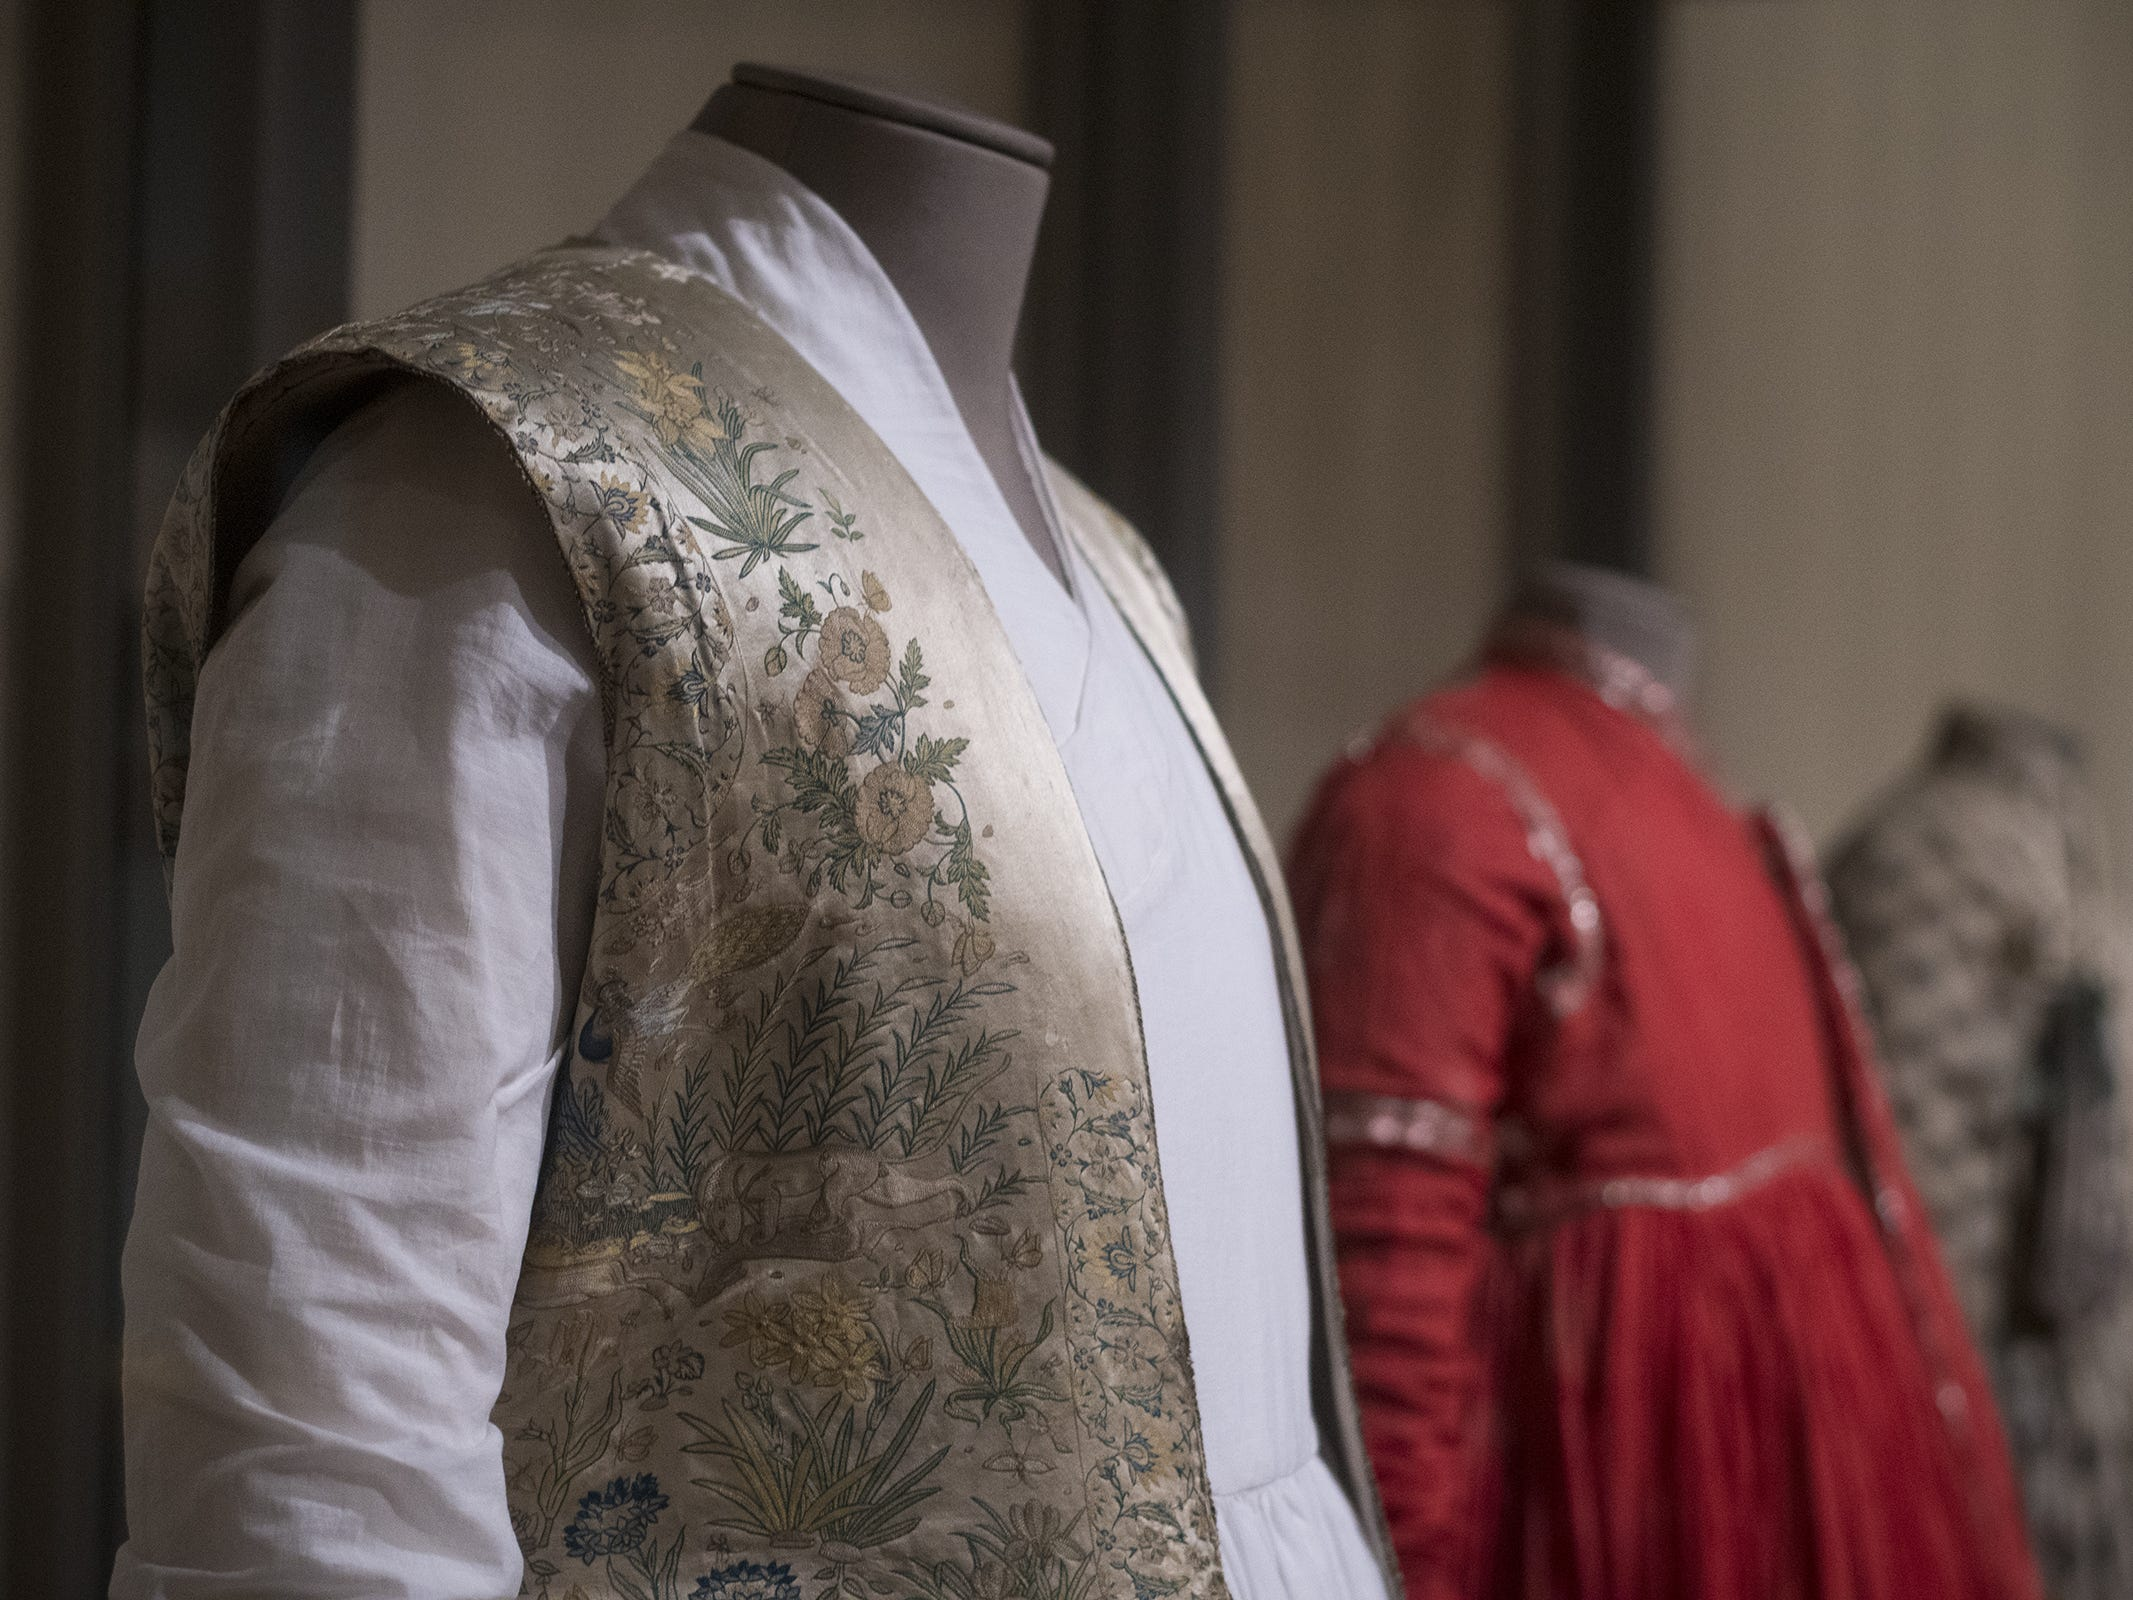 This riding coat from the early 1600s is a part of the new Fabrics of India exhibit at the Cincinnati Art Museum.